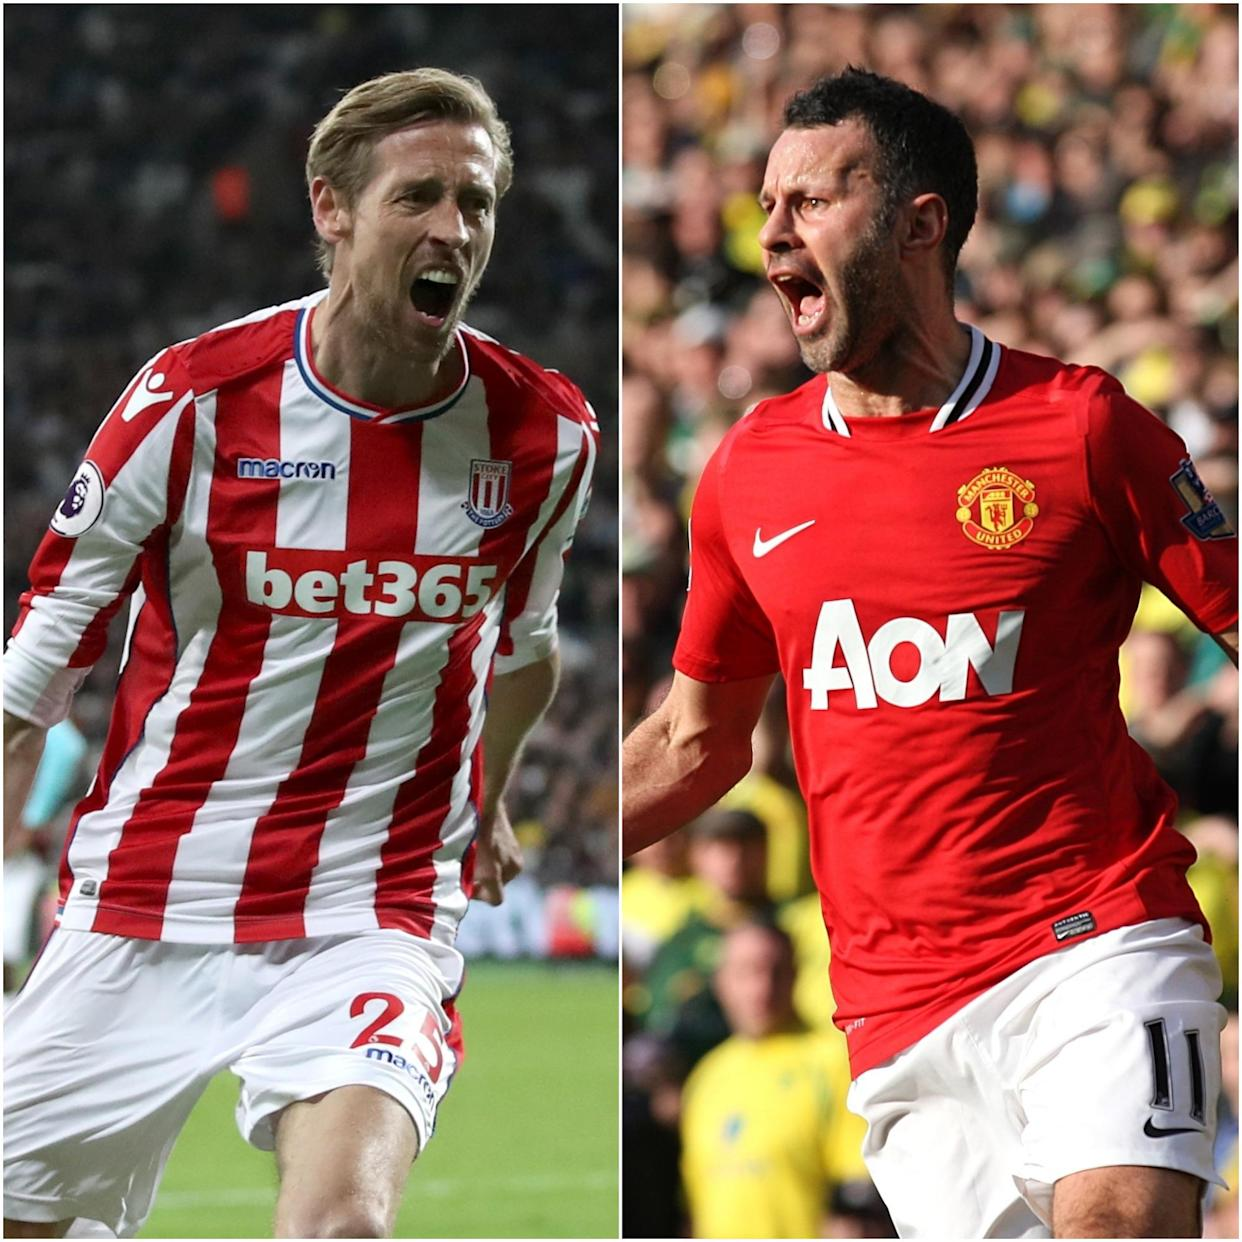 Peter Crouch, left, and Ryan Giggs